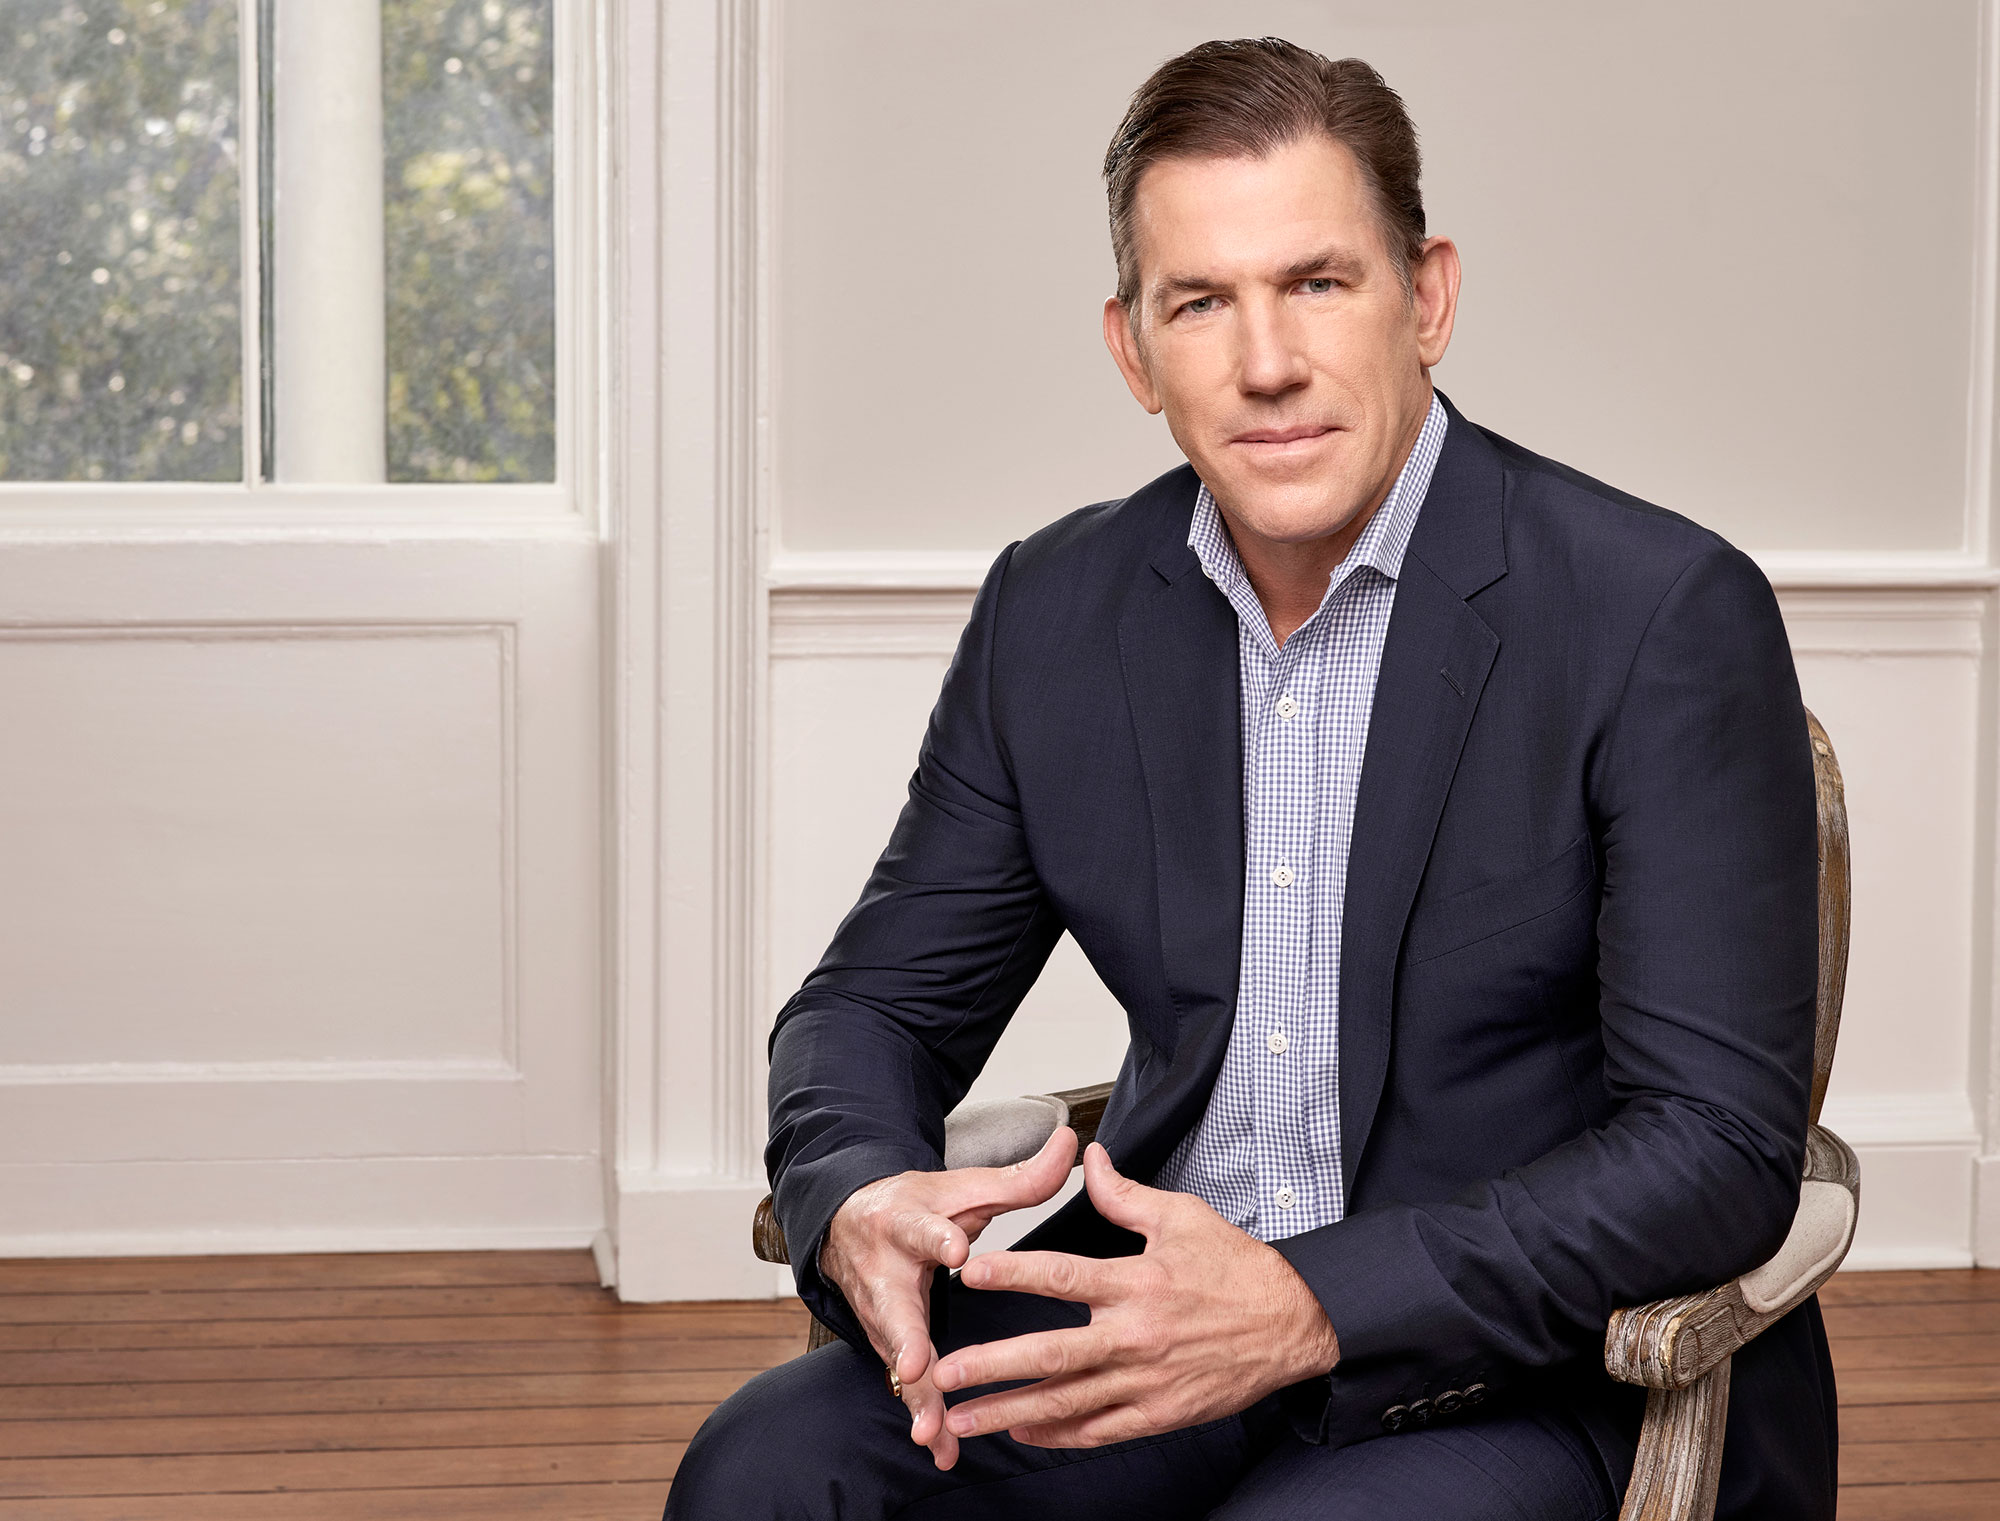 Southern Charm's Nanny Dawn Sues Thomas Ravenel, Bravo in Connection with Assault Allegations